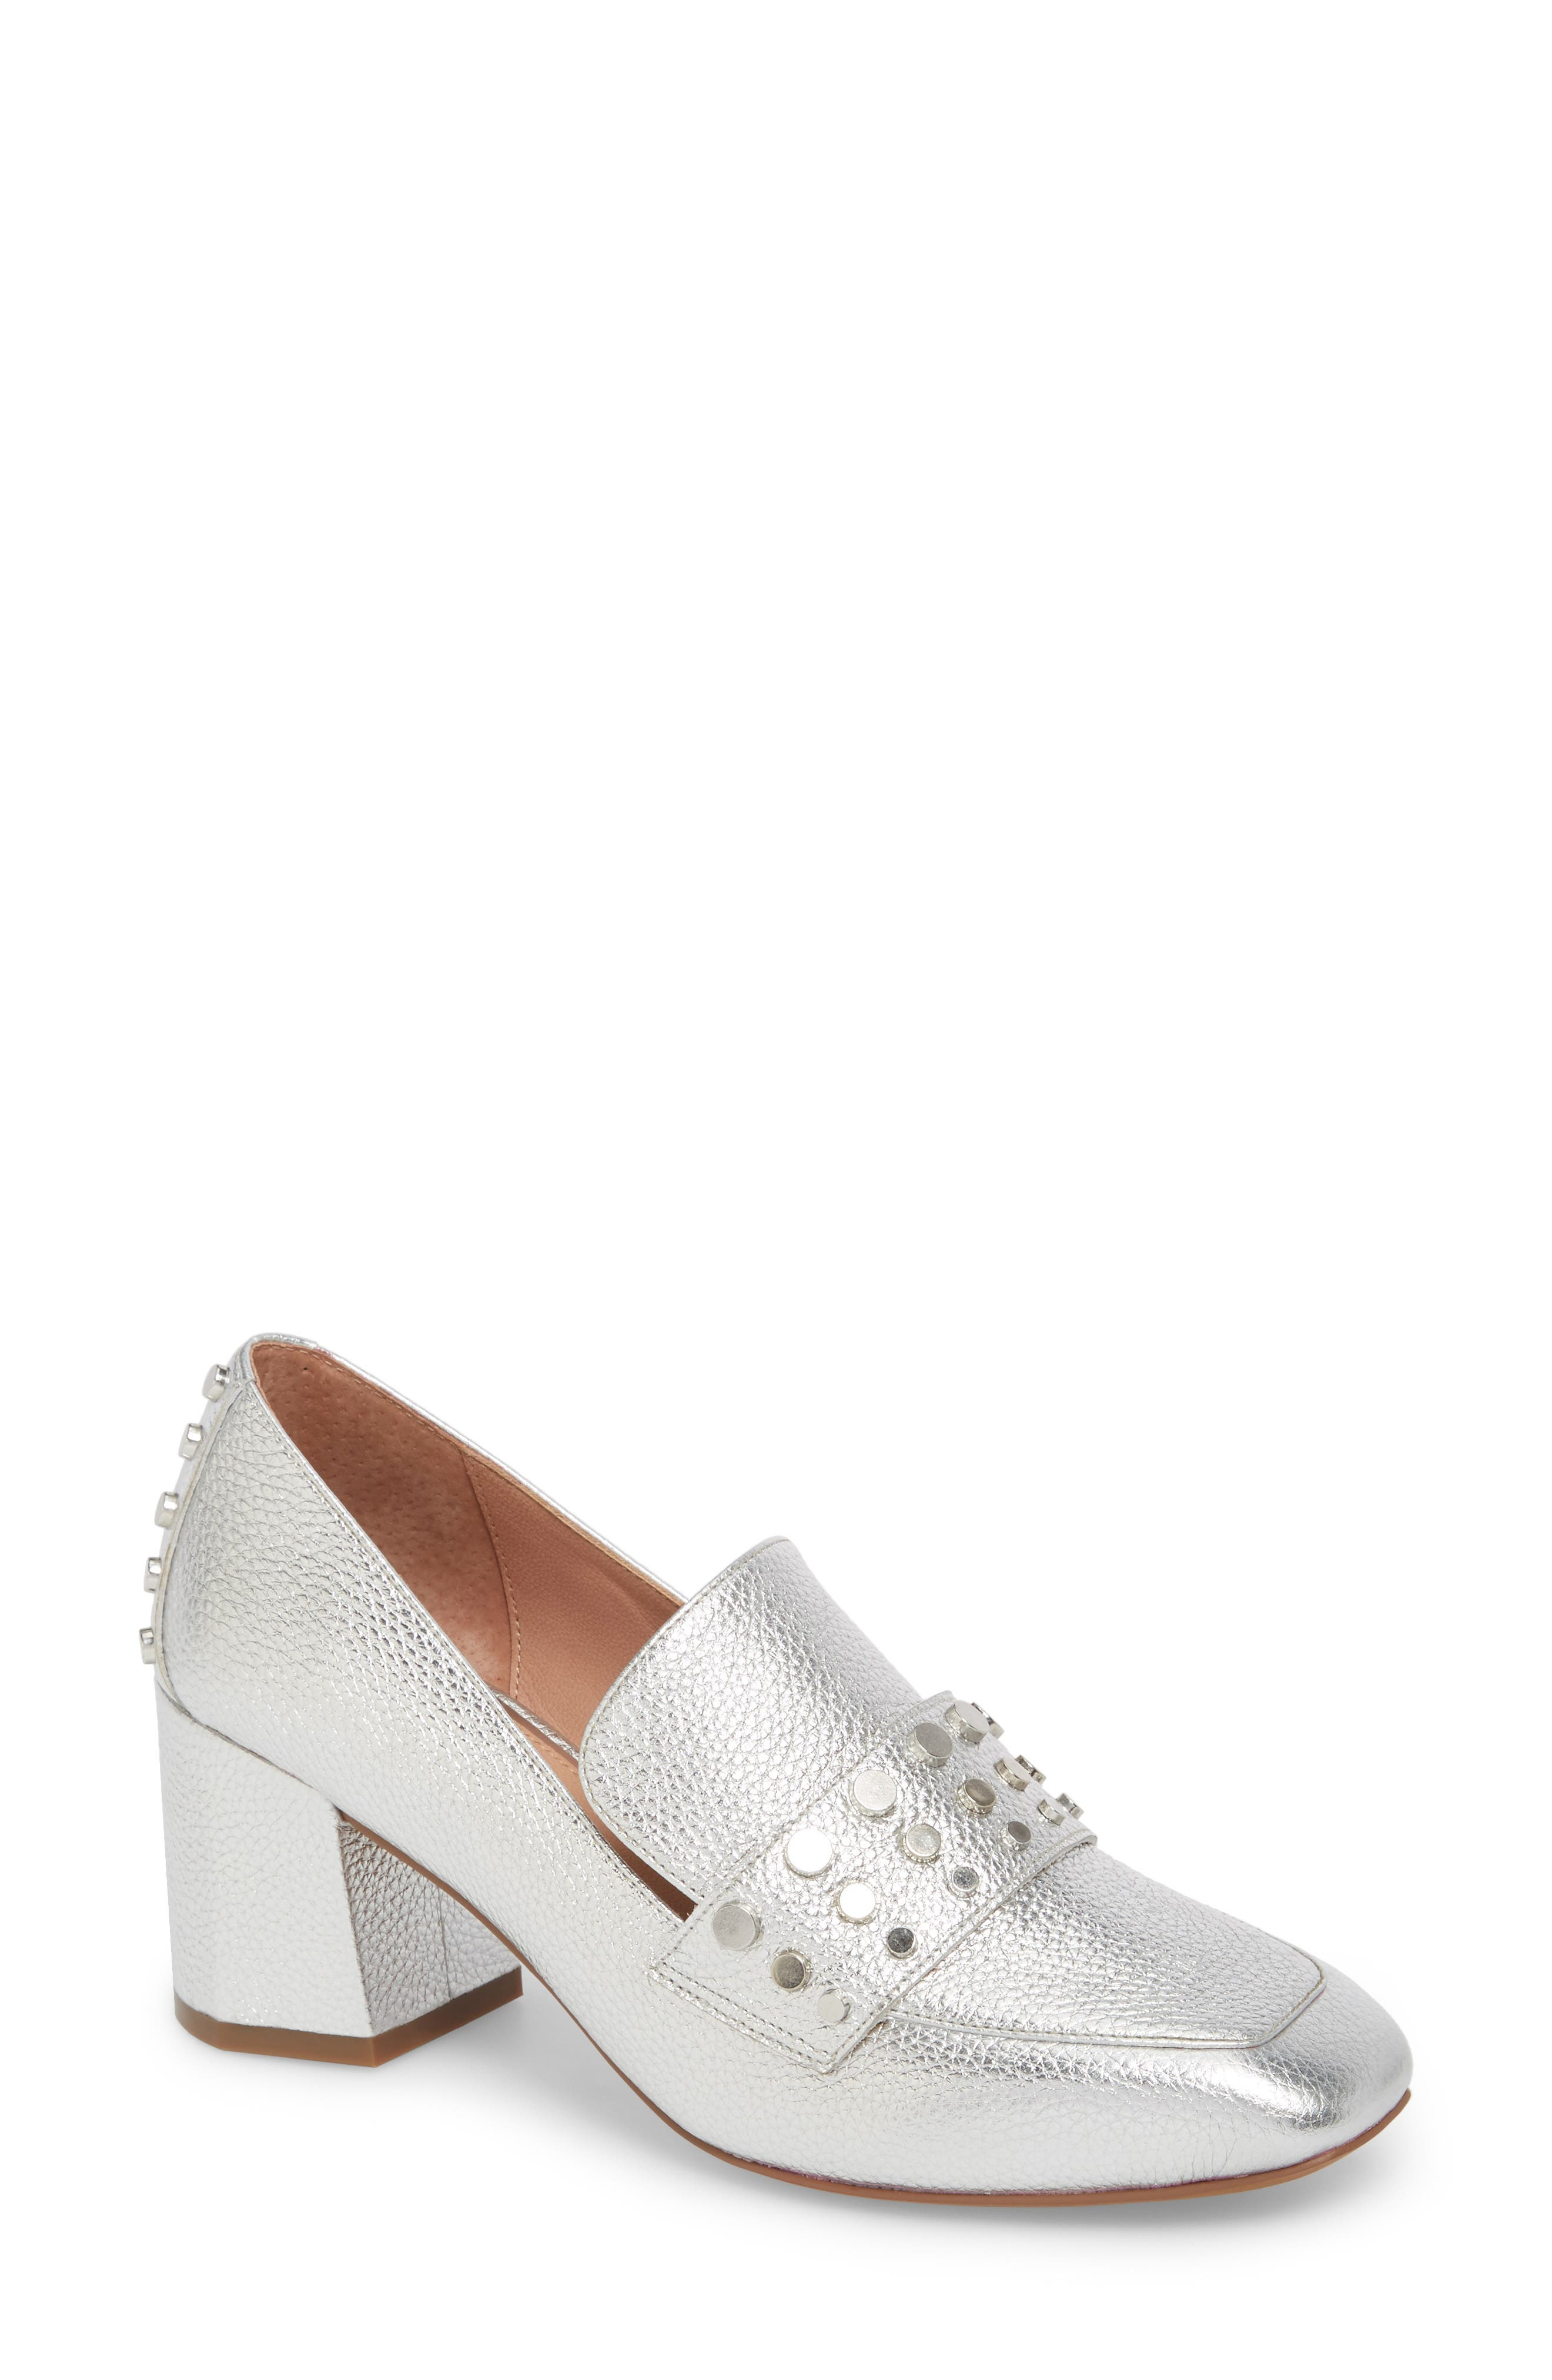 Luca Studded Pump,                             Main thumbnail 1, color,                             Silver Leather